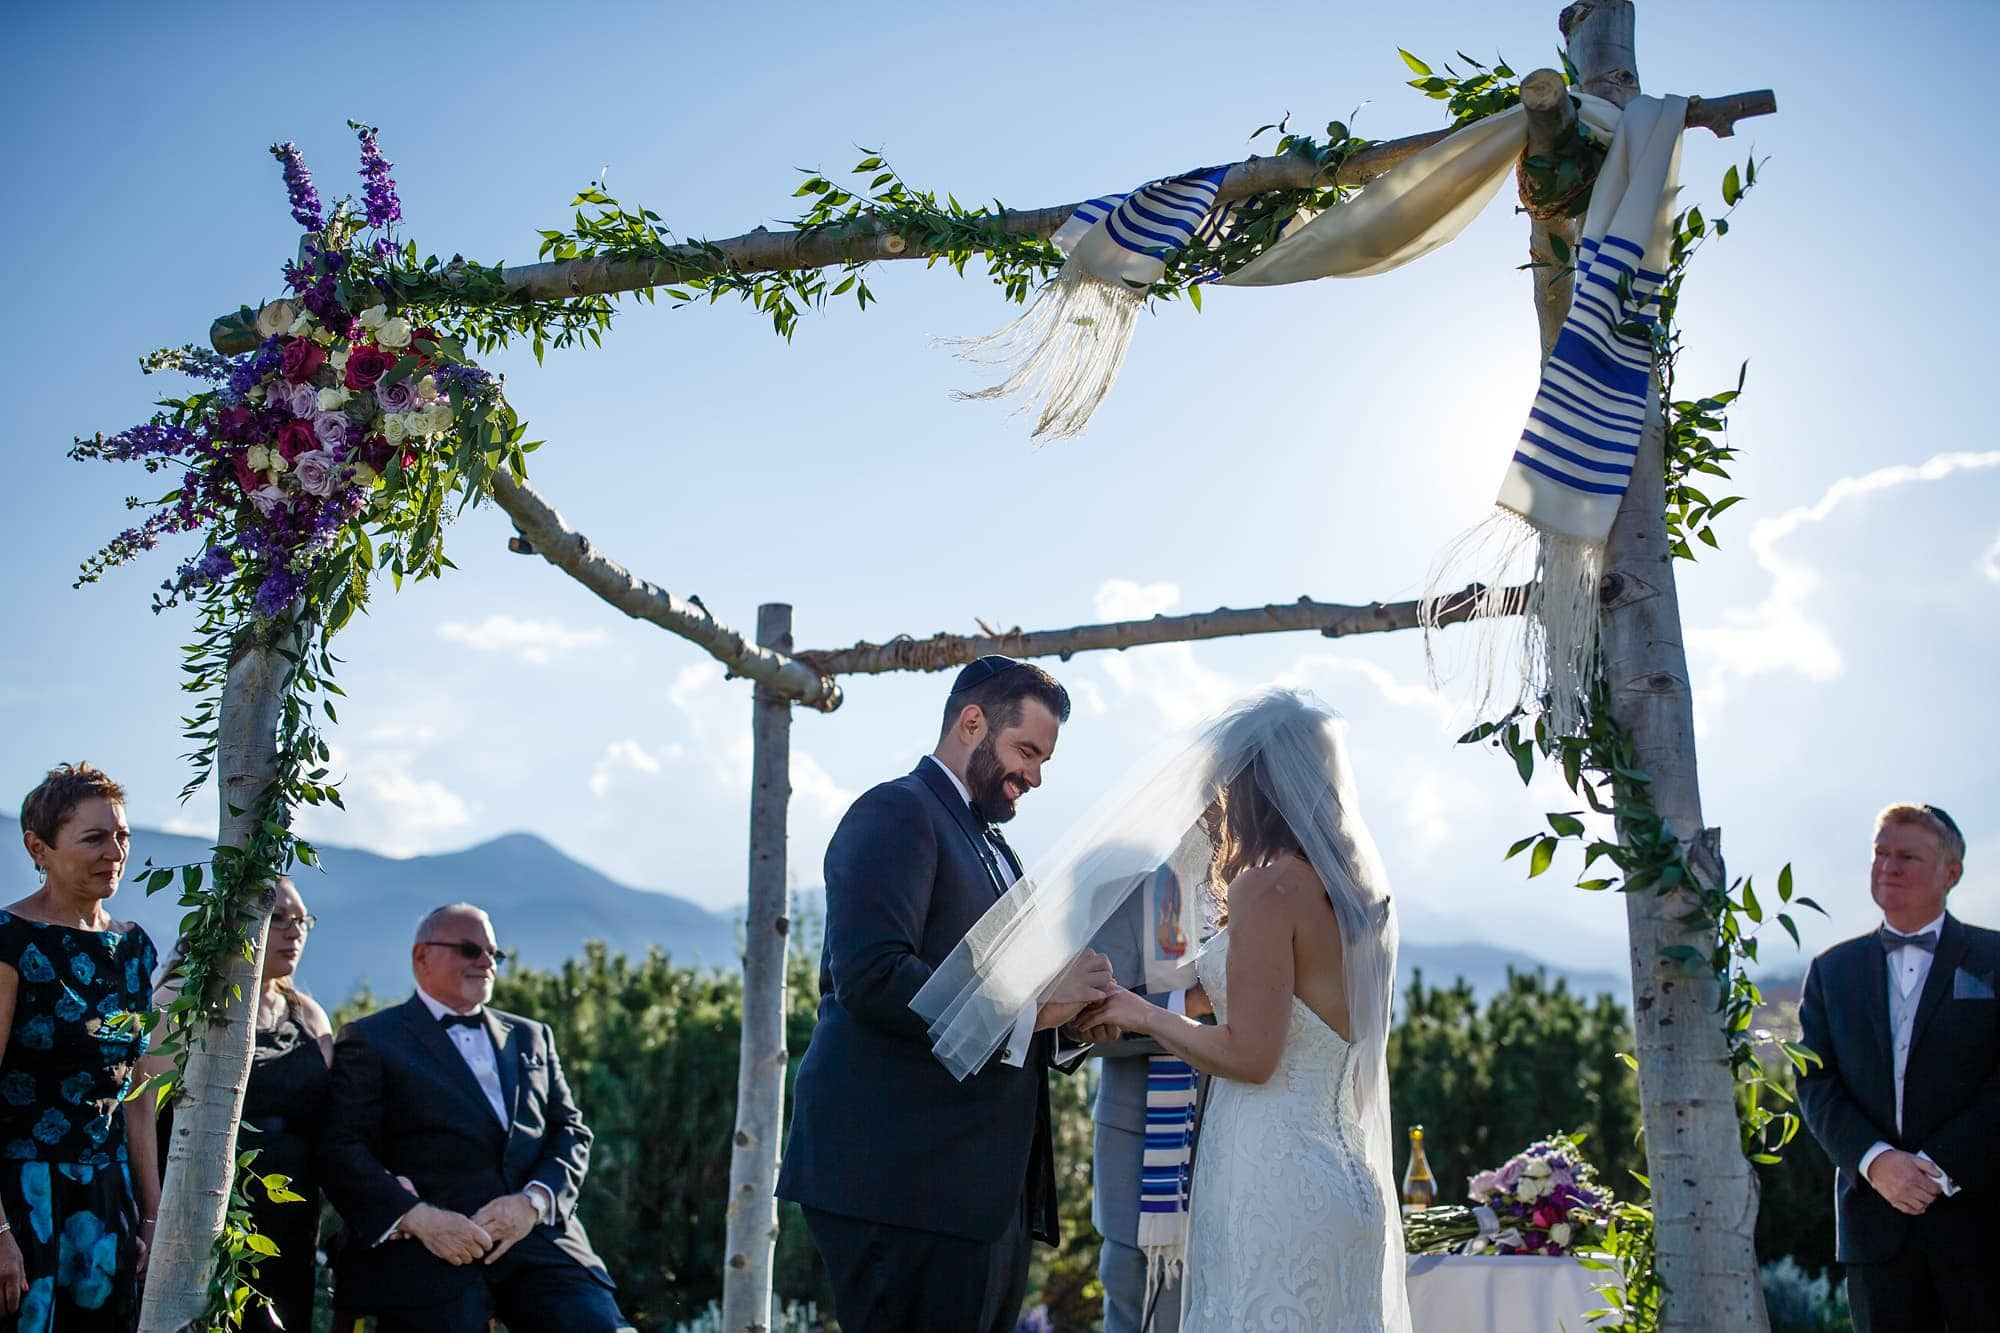 Joshua places the ring on his bride's finger under the Chuppah made of aspen trees and flowers at Garden of the Gods Club in Colorado Springs